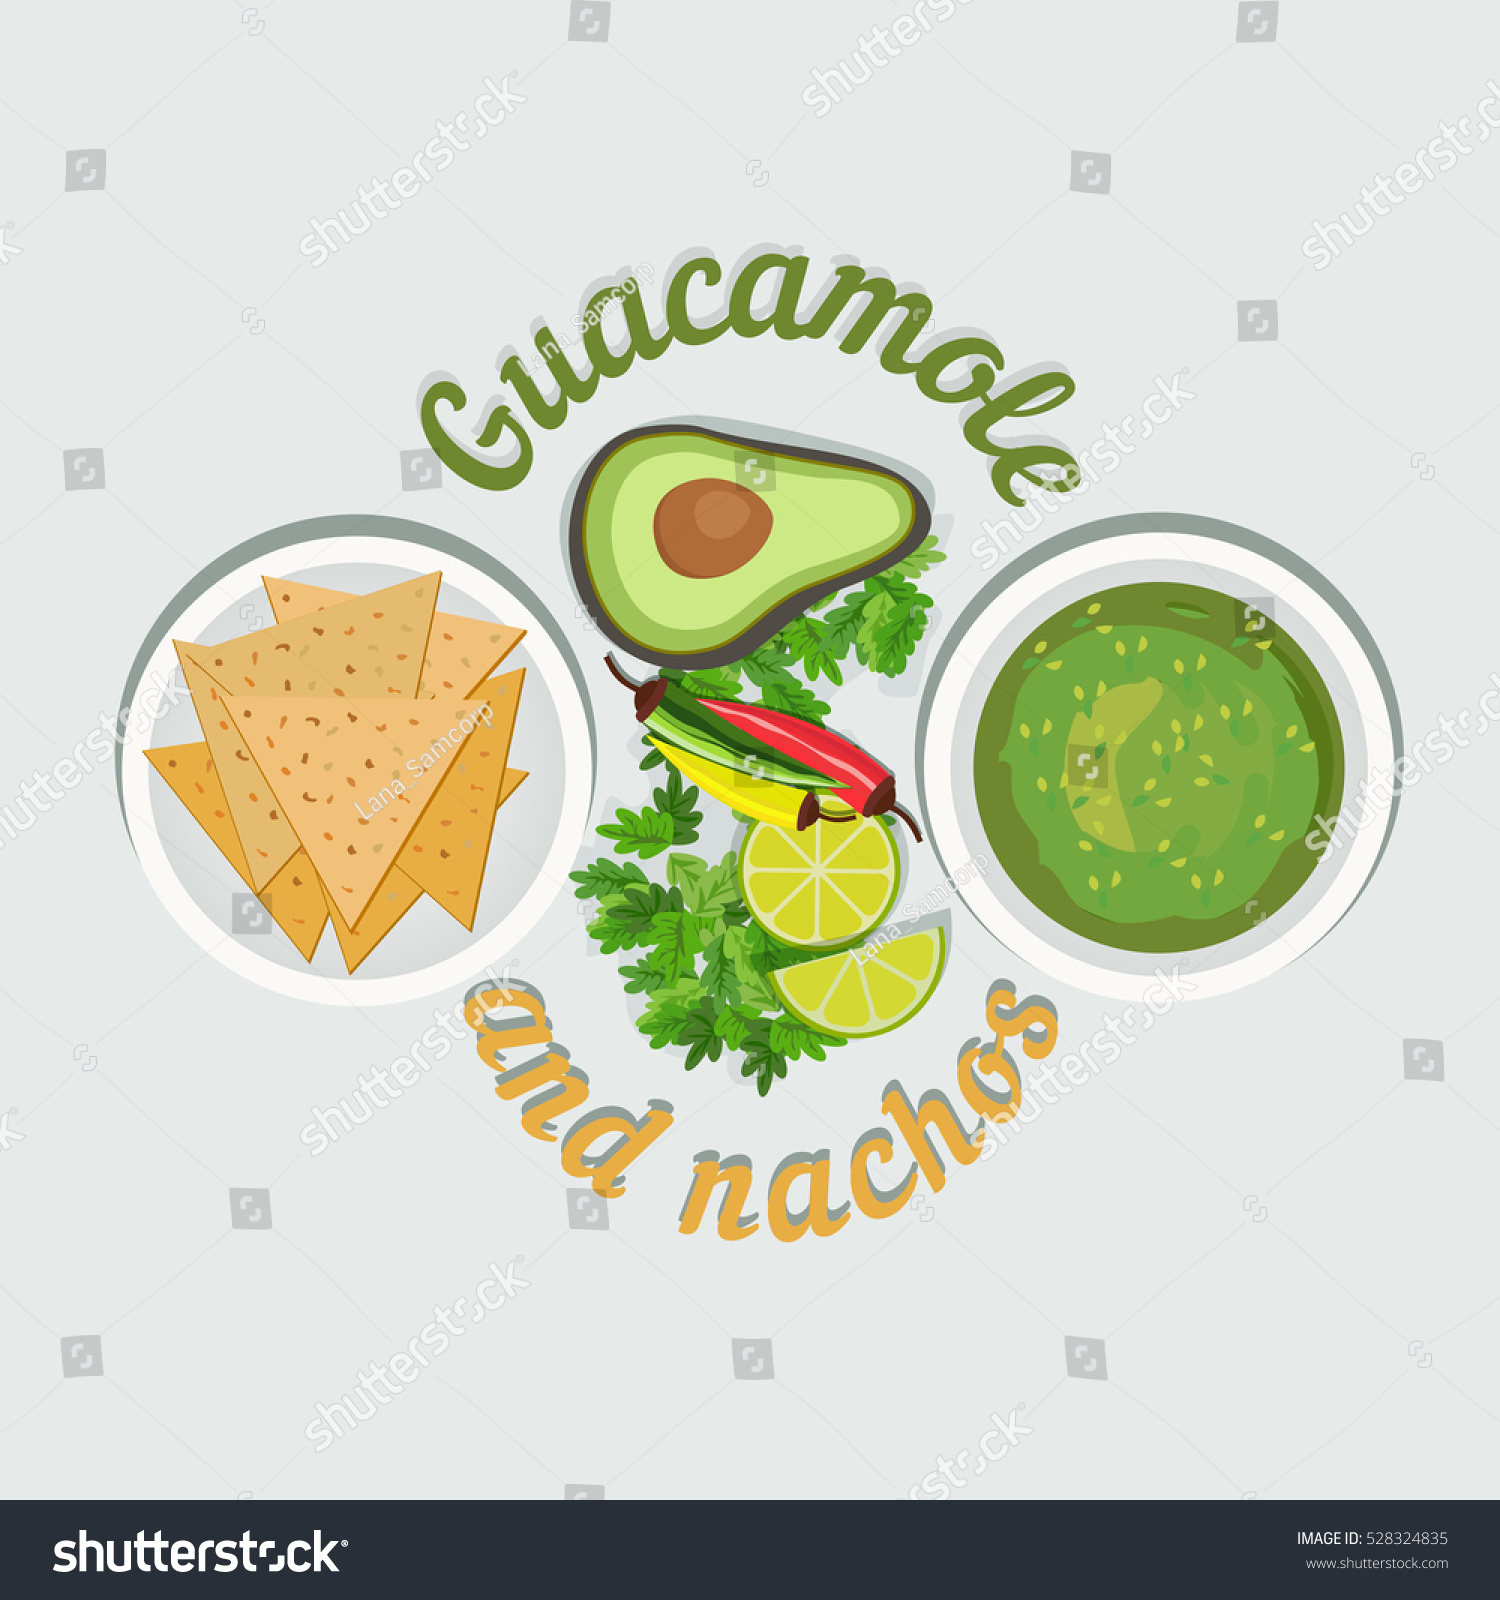 mexican food freehand cartoon cuisine retro stock vector 528324835 shutterstock. Black Bedroom Furniture Sets. Home Design Ideas